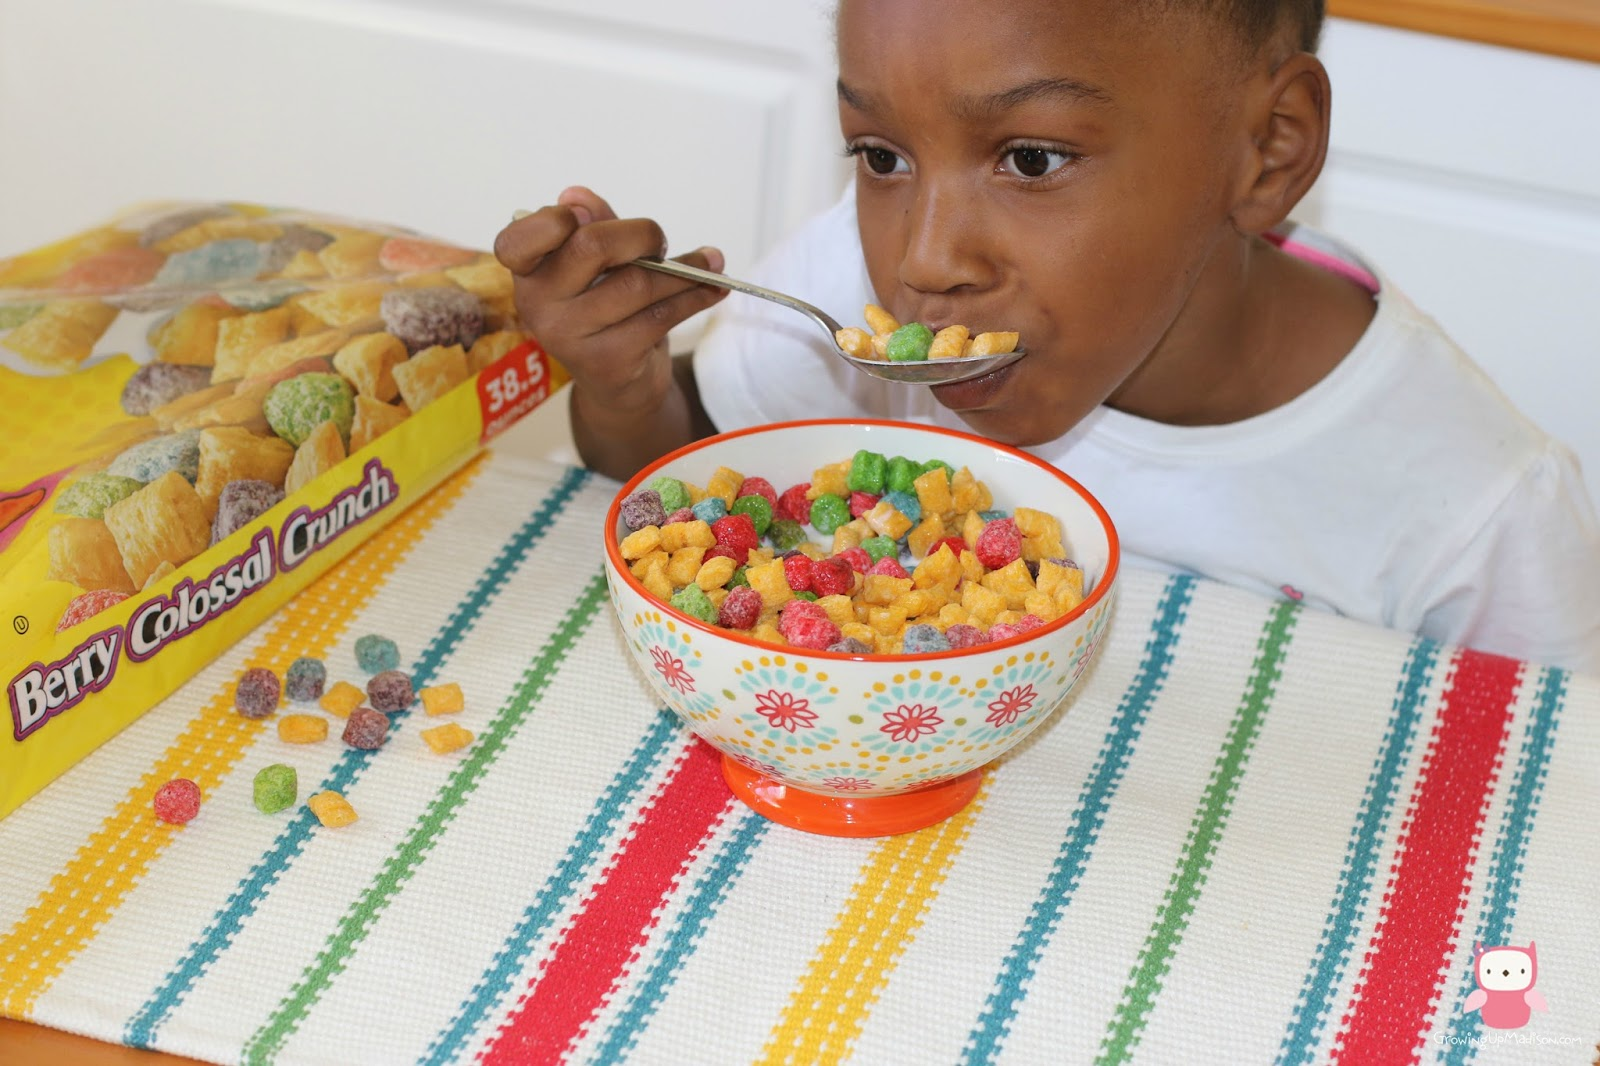 Child Eating Cereal